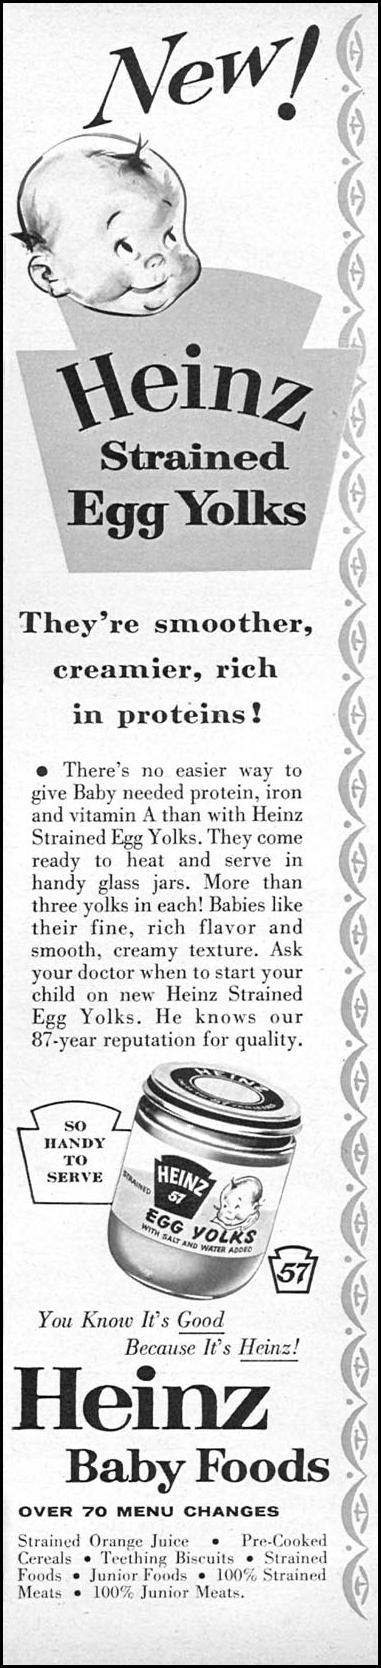 HEINZ STRAINED EGG YOLKS FAMILY CIRCLE 01/01/1956 p. 61